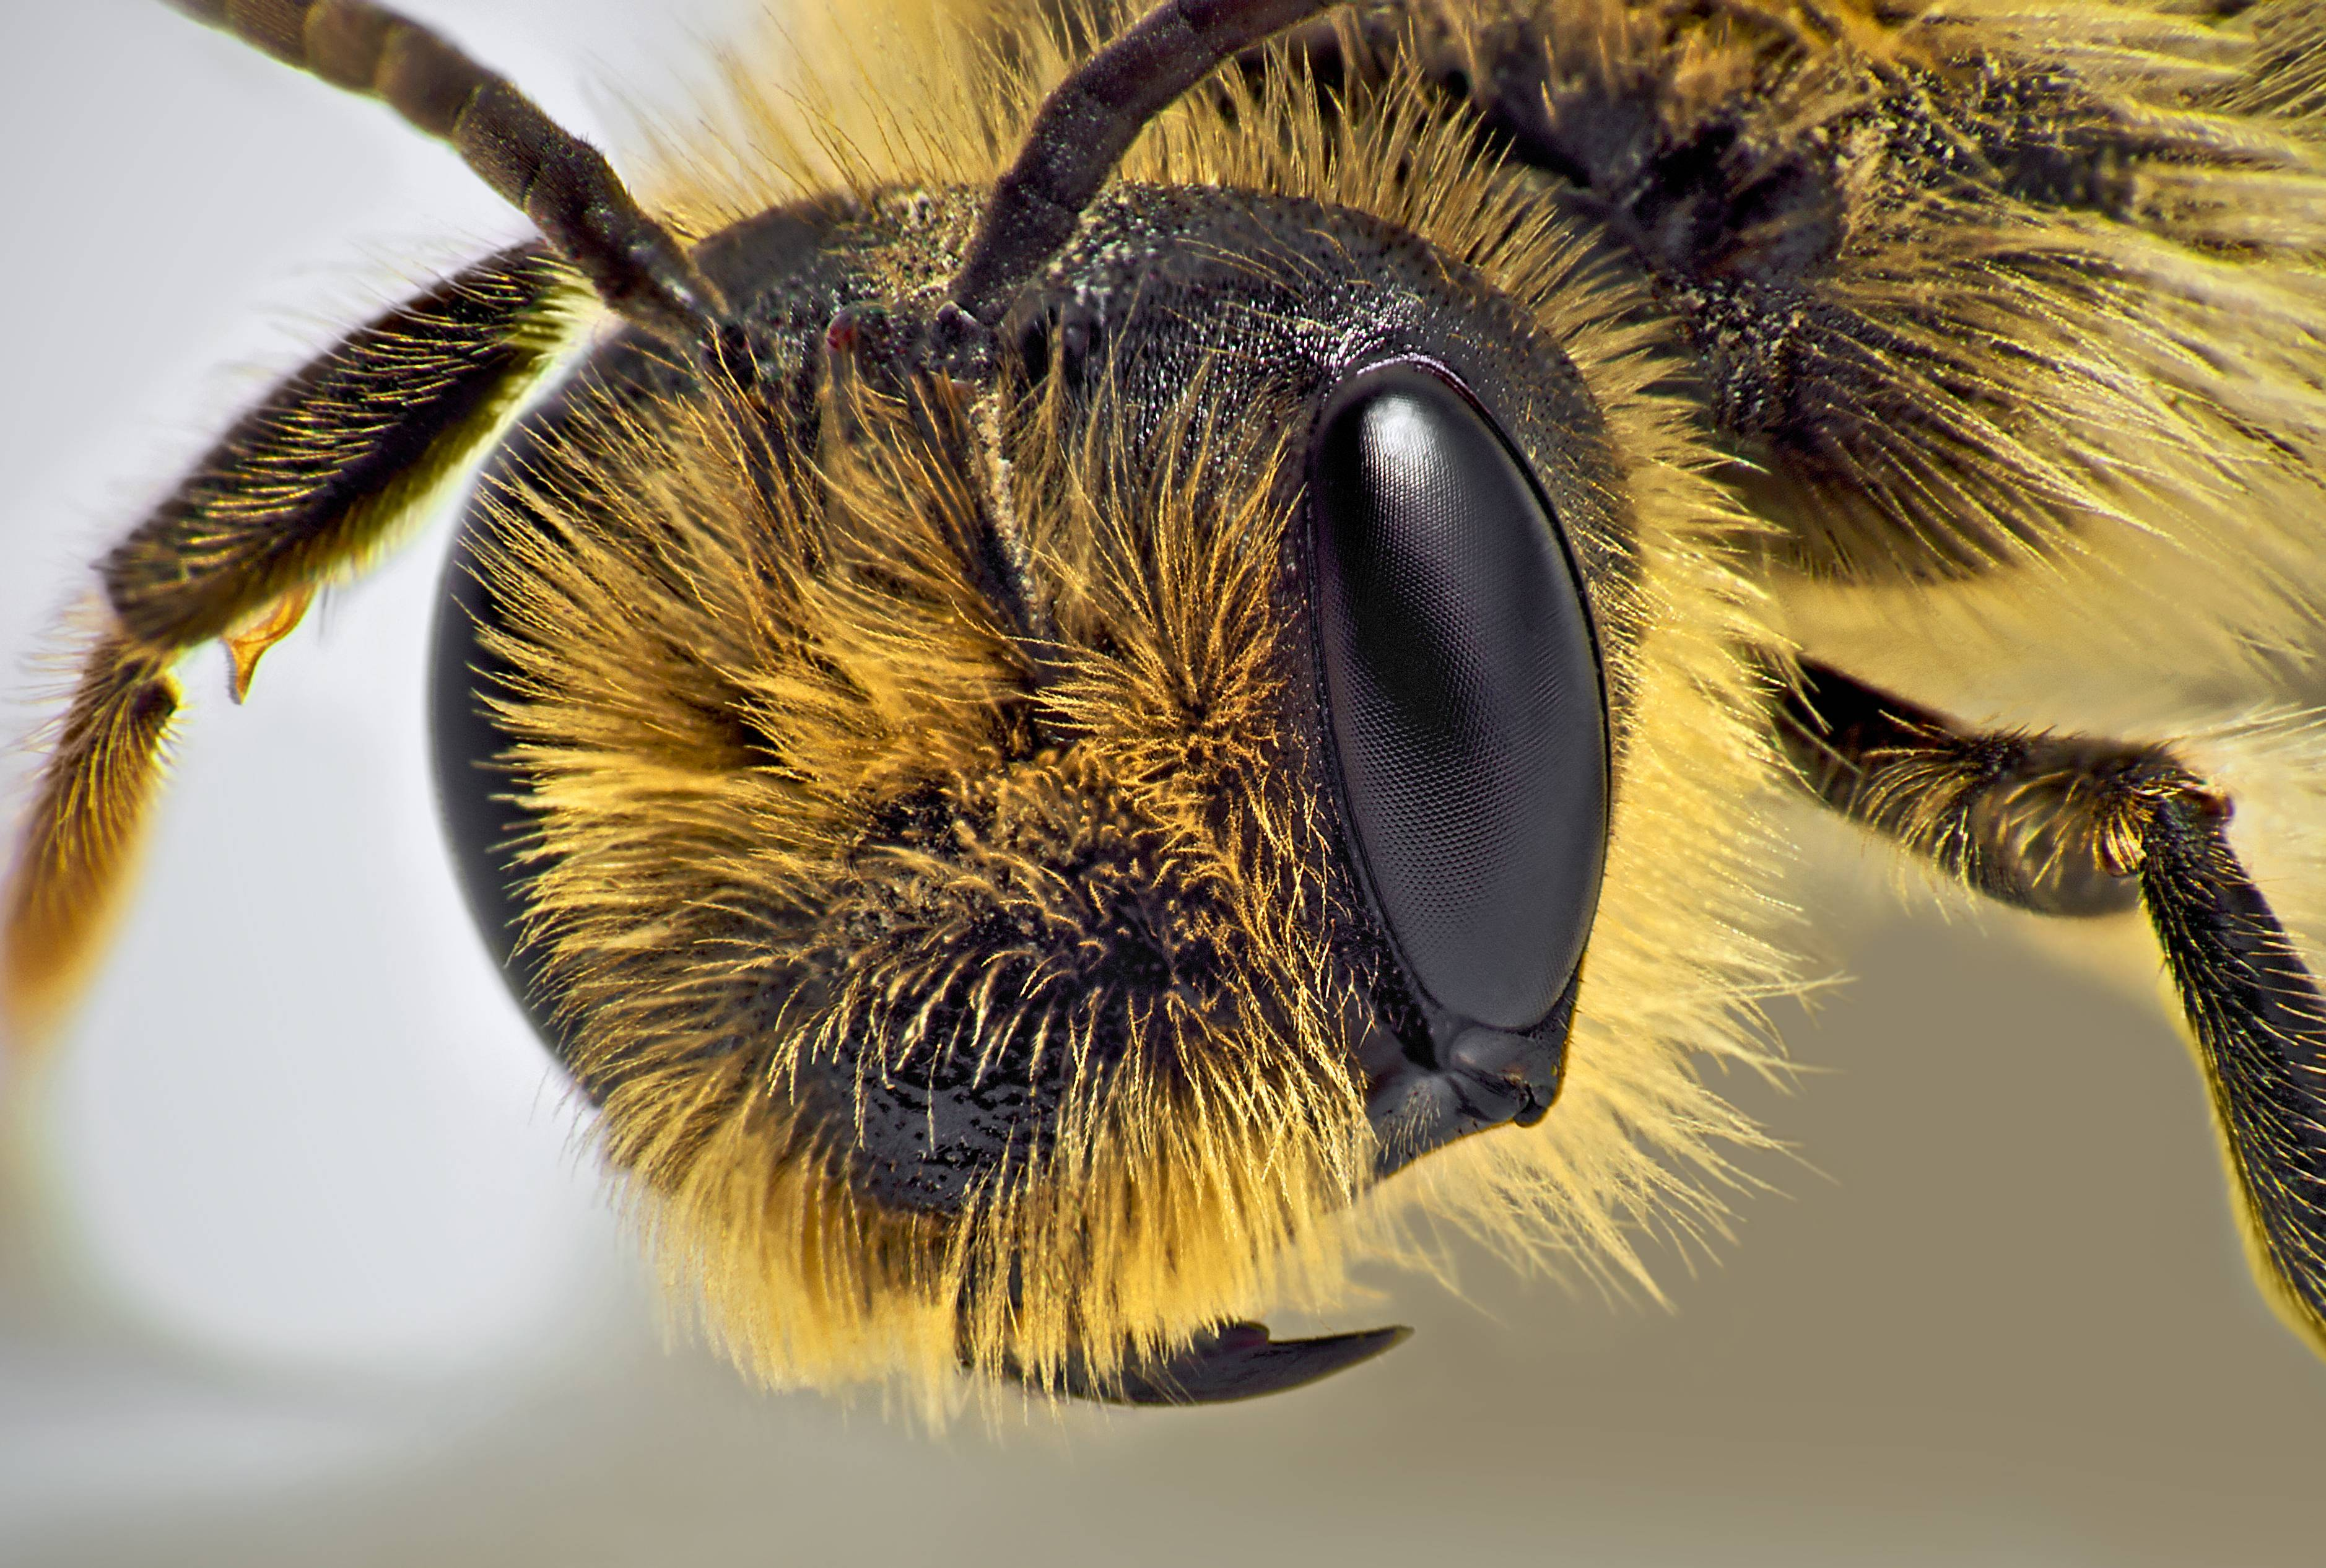 Let's take a moment to enjoy the cuteness of bees while they still exist.